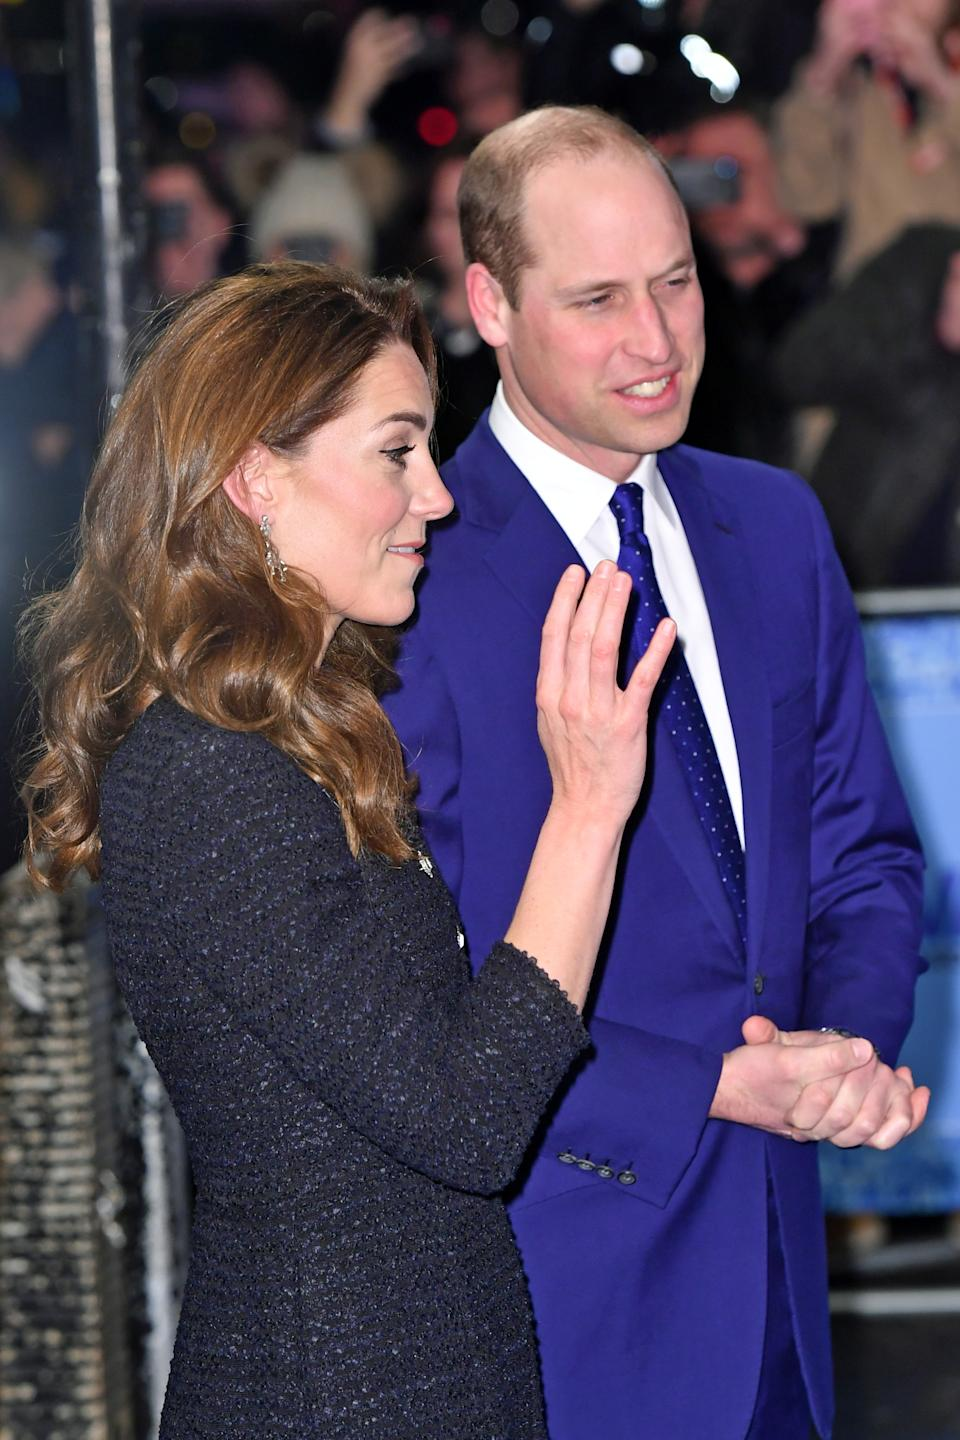 The Duke and Duchess of Cambridge arrive at the Noel Coward Theatre in London to attend a special performance of Dear Evan Hansen. (Photo by Dominic Lipinski/PA Images via Getty Images)